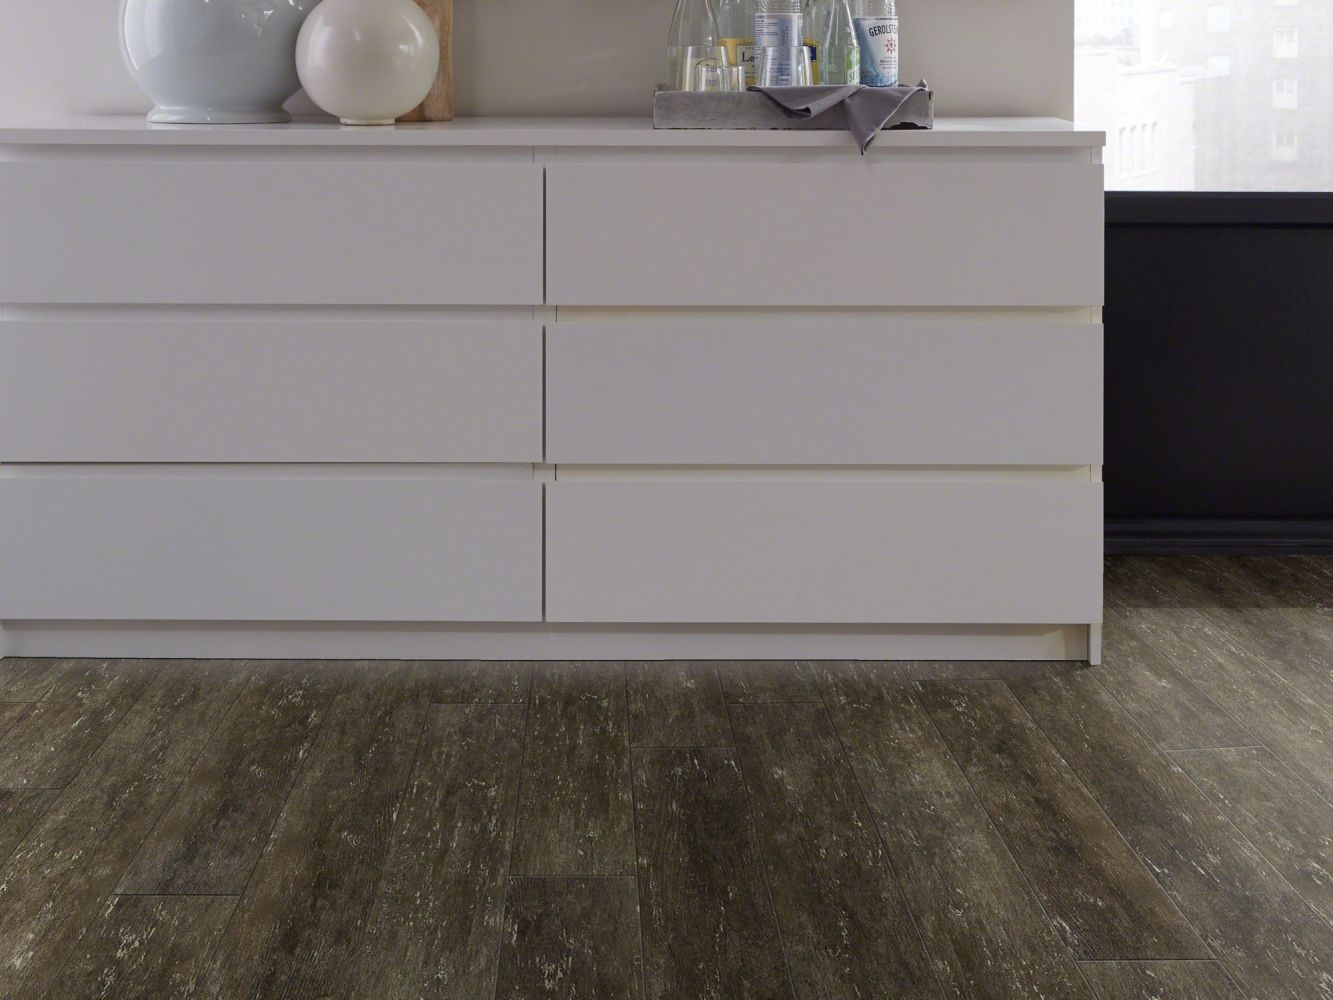 Shaw Floors Resilient Residential Easy Avenue Plank Vintage 00504_043VF